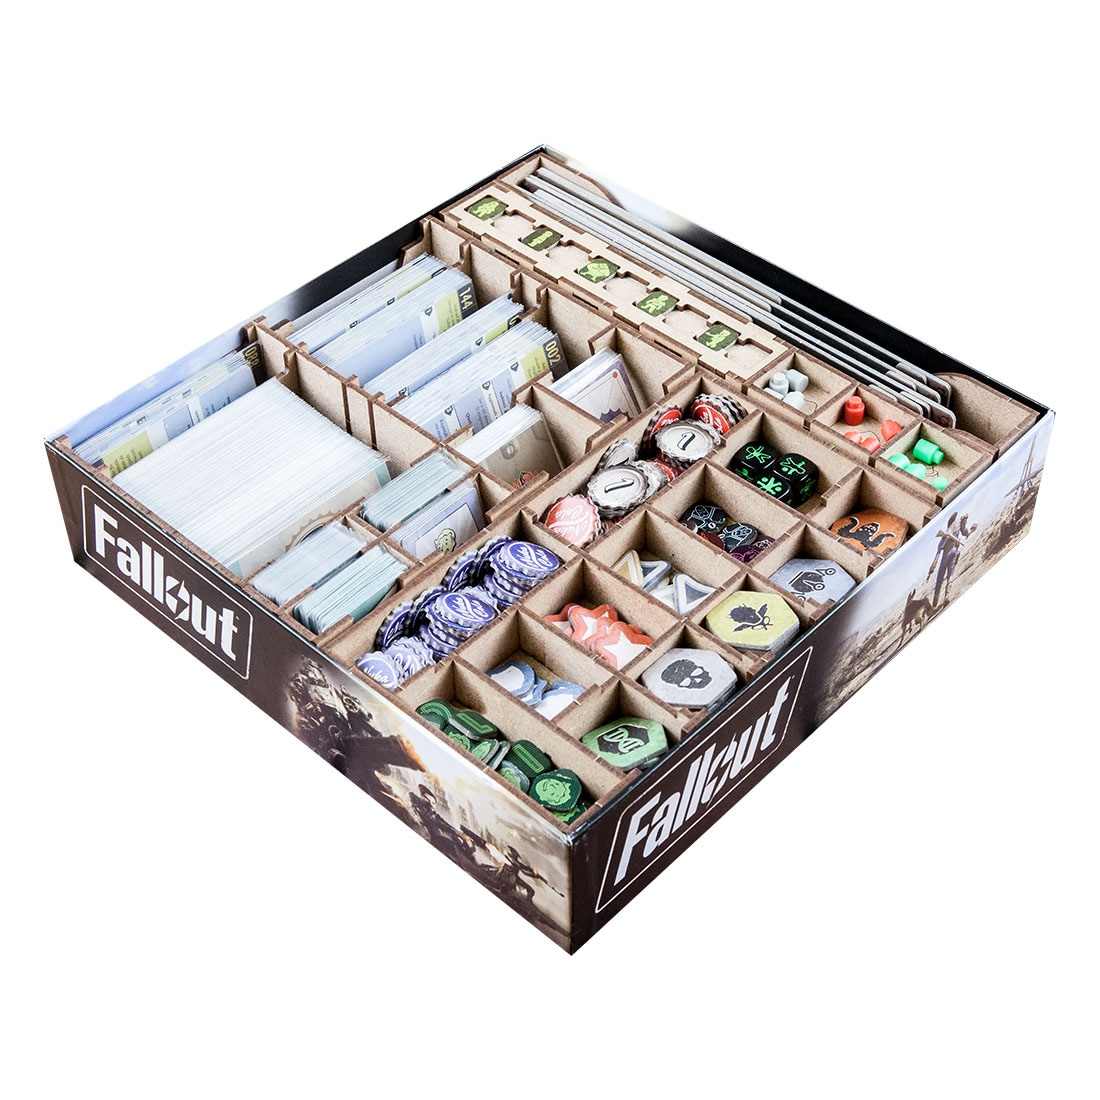 Fallout (base game or with New California expansion) Organizer Insert - 2